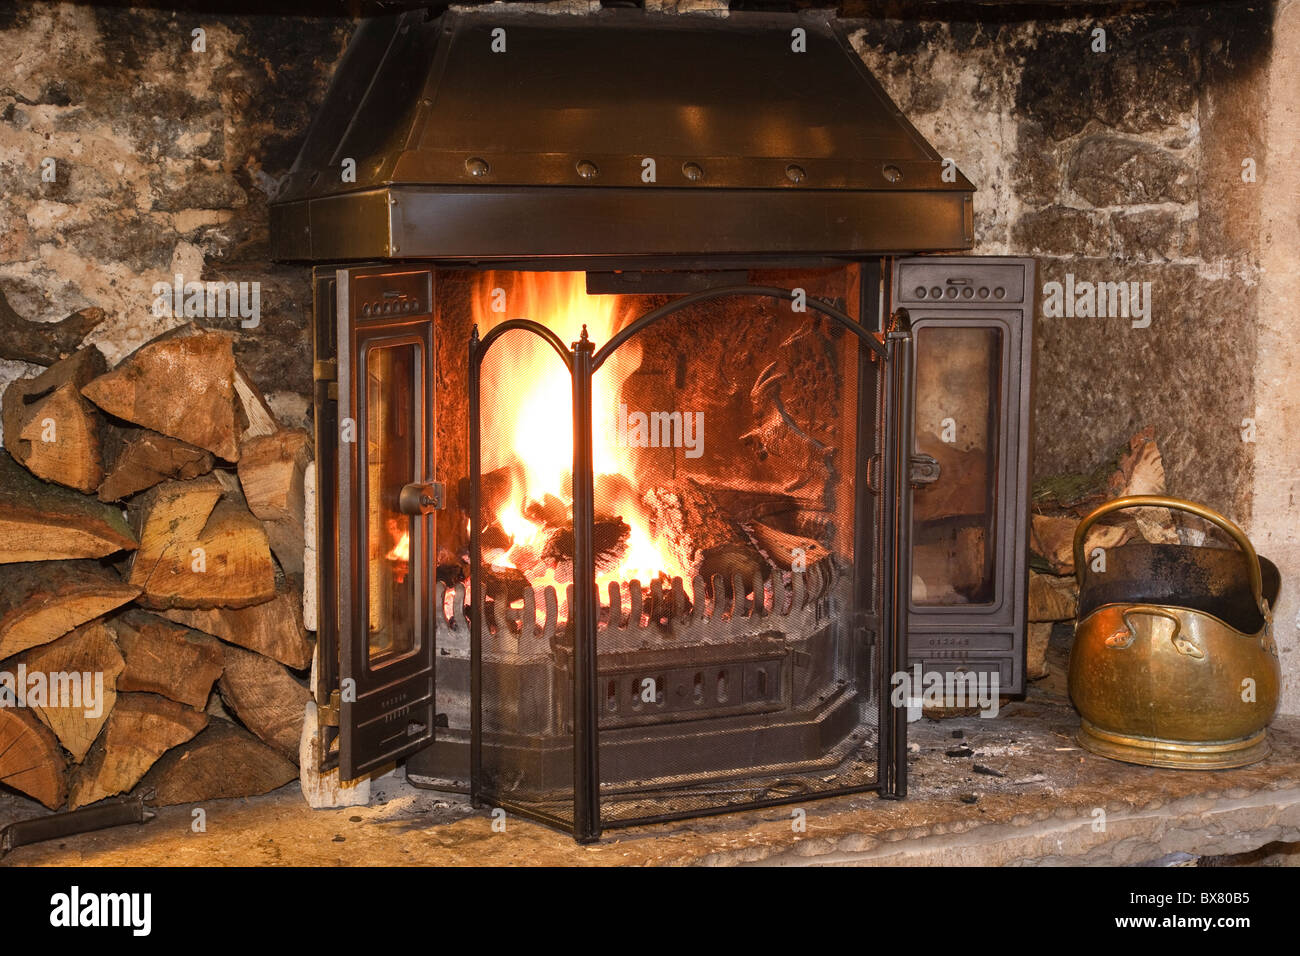 Open log fire with logs burning and fireguard on the hearth in cosy warm domestic living room. England, UK, Britain - Stock Image